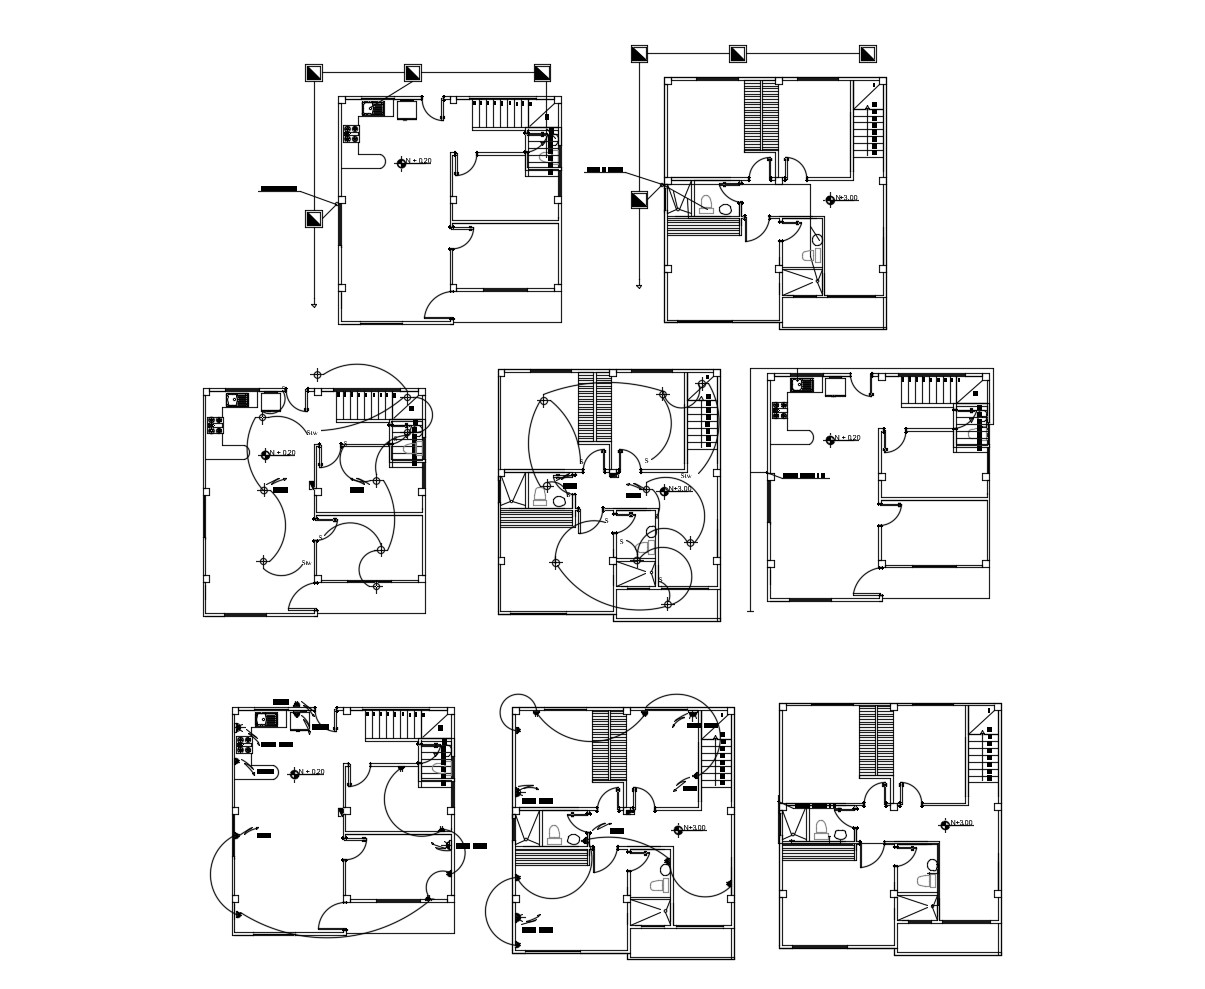 Electrical house plan in DWG file